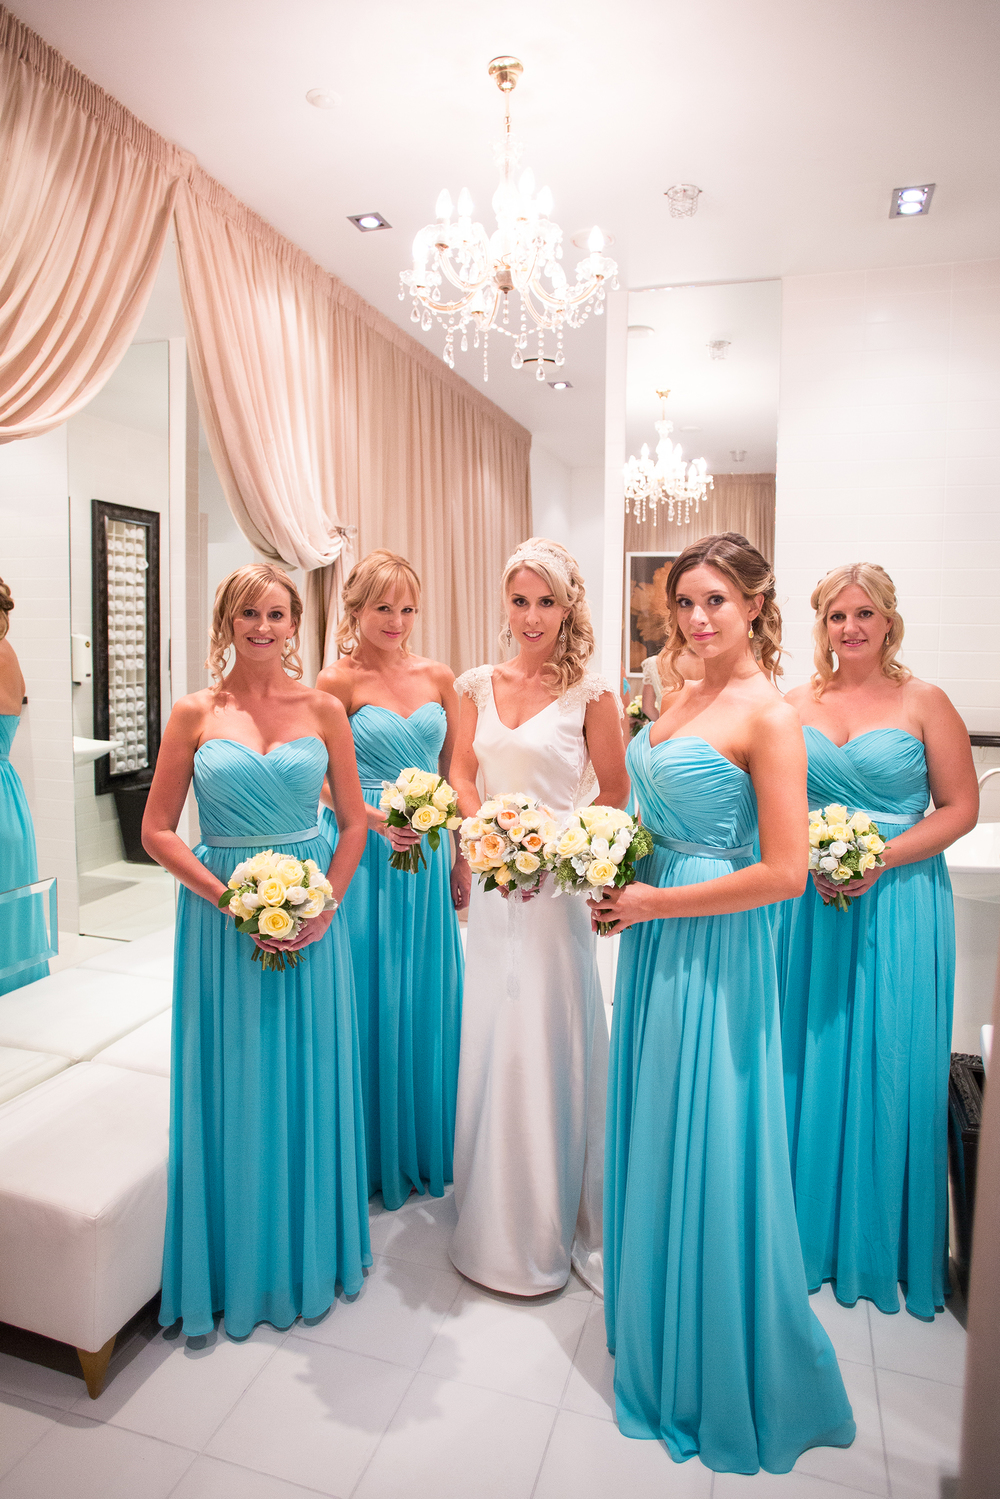 Blue bridesmaids dressesDress from Astra Bridal | Photography Kirsty and Grant Photography | www.borrowedandblue.kiwi